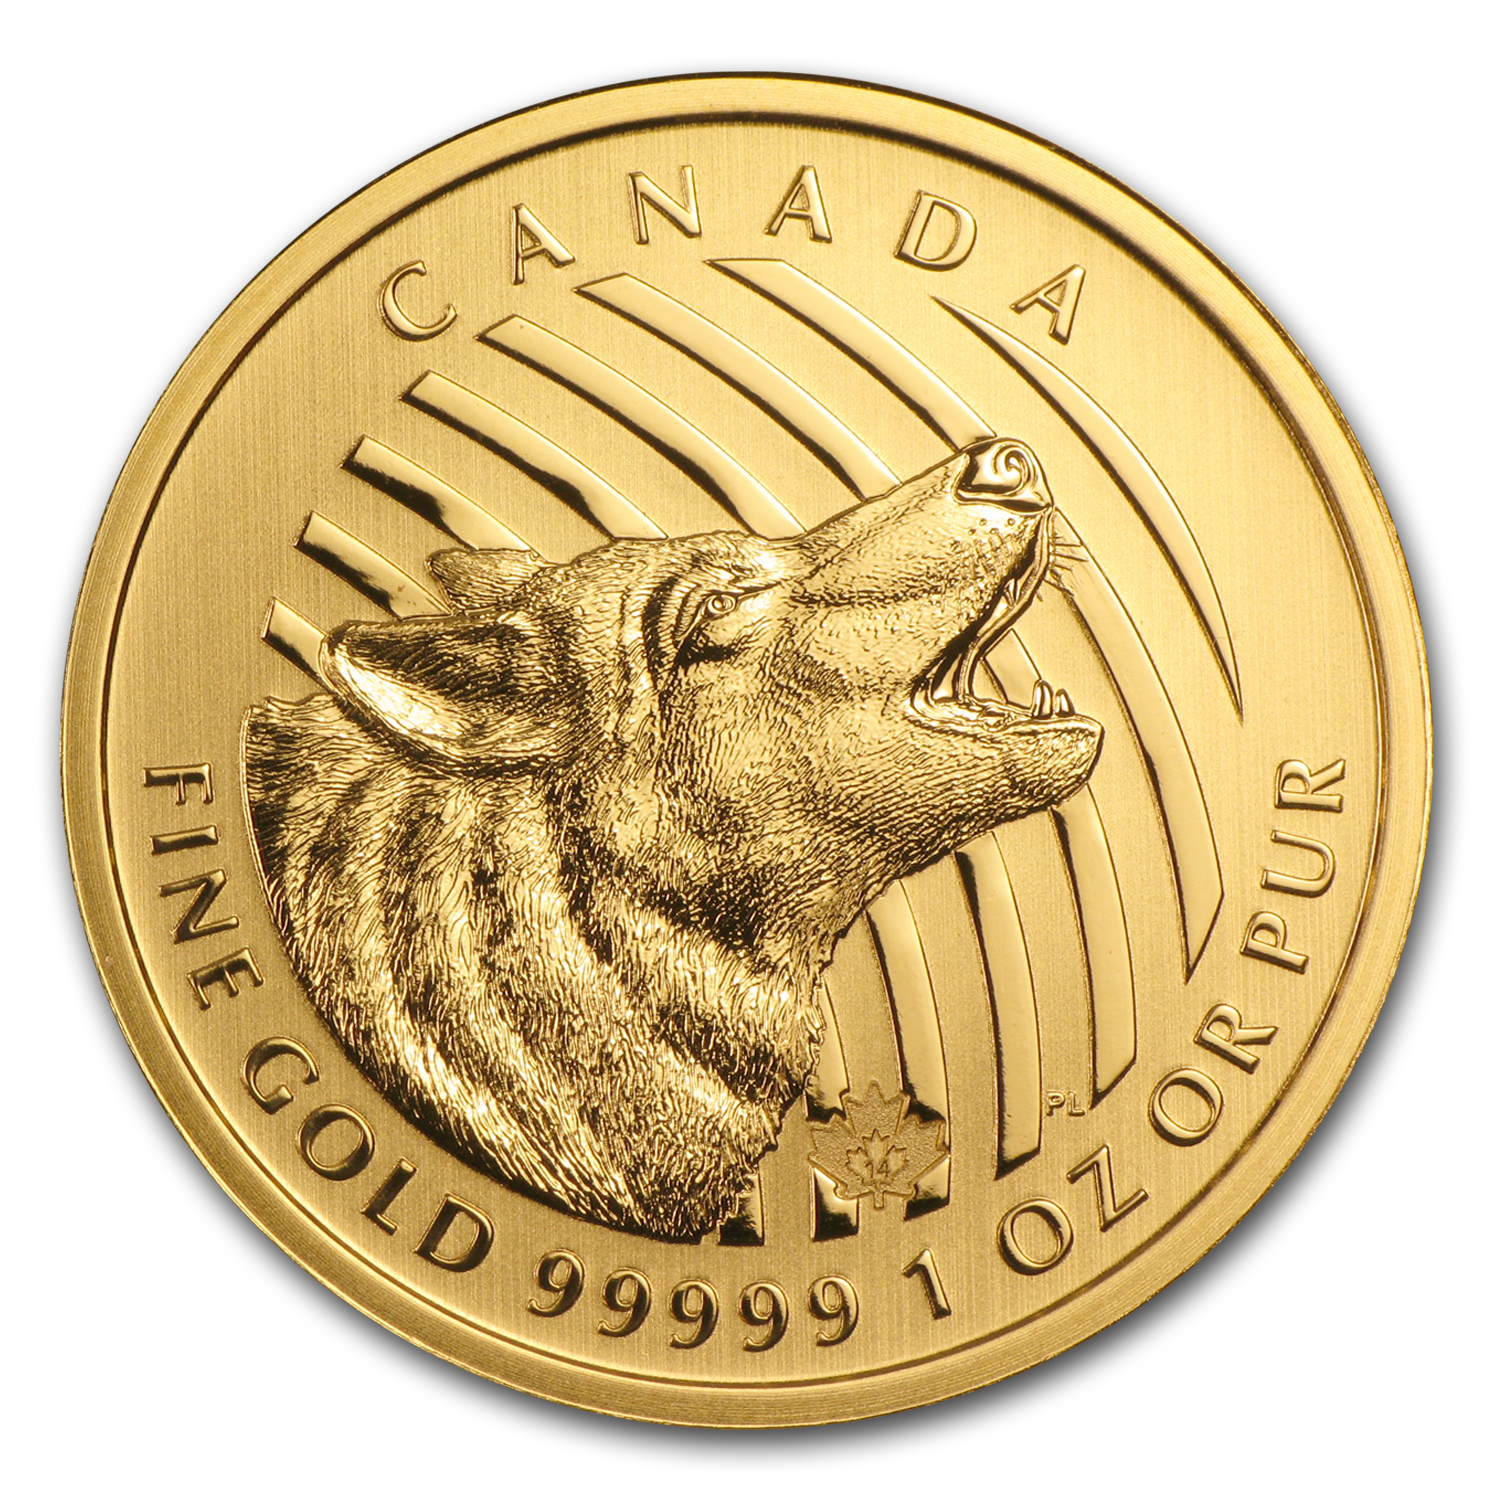 2014 Canada 1 oz Gold Howling Wolf .99999 BU (No Assay Card)